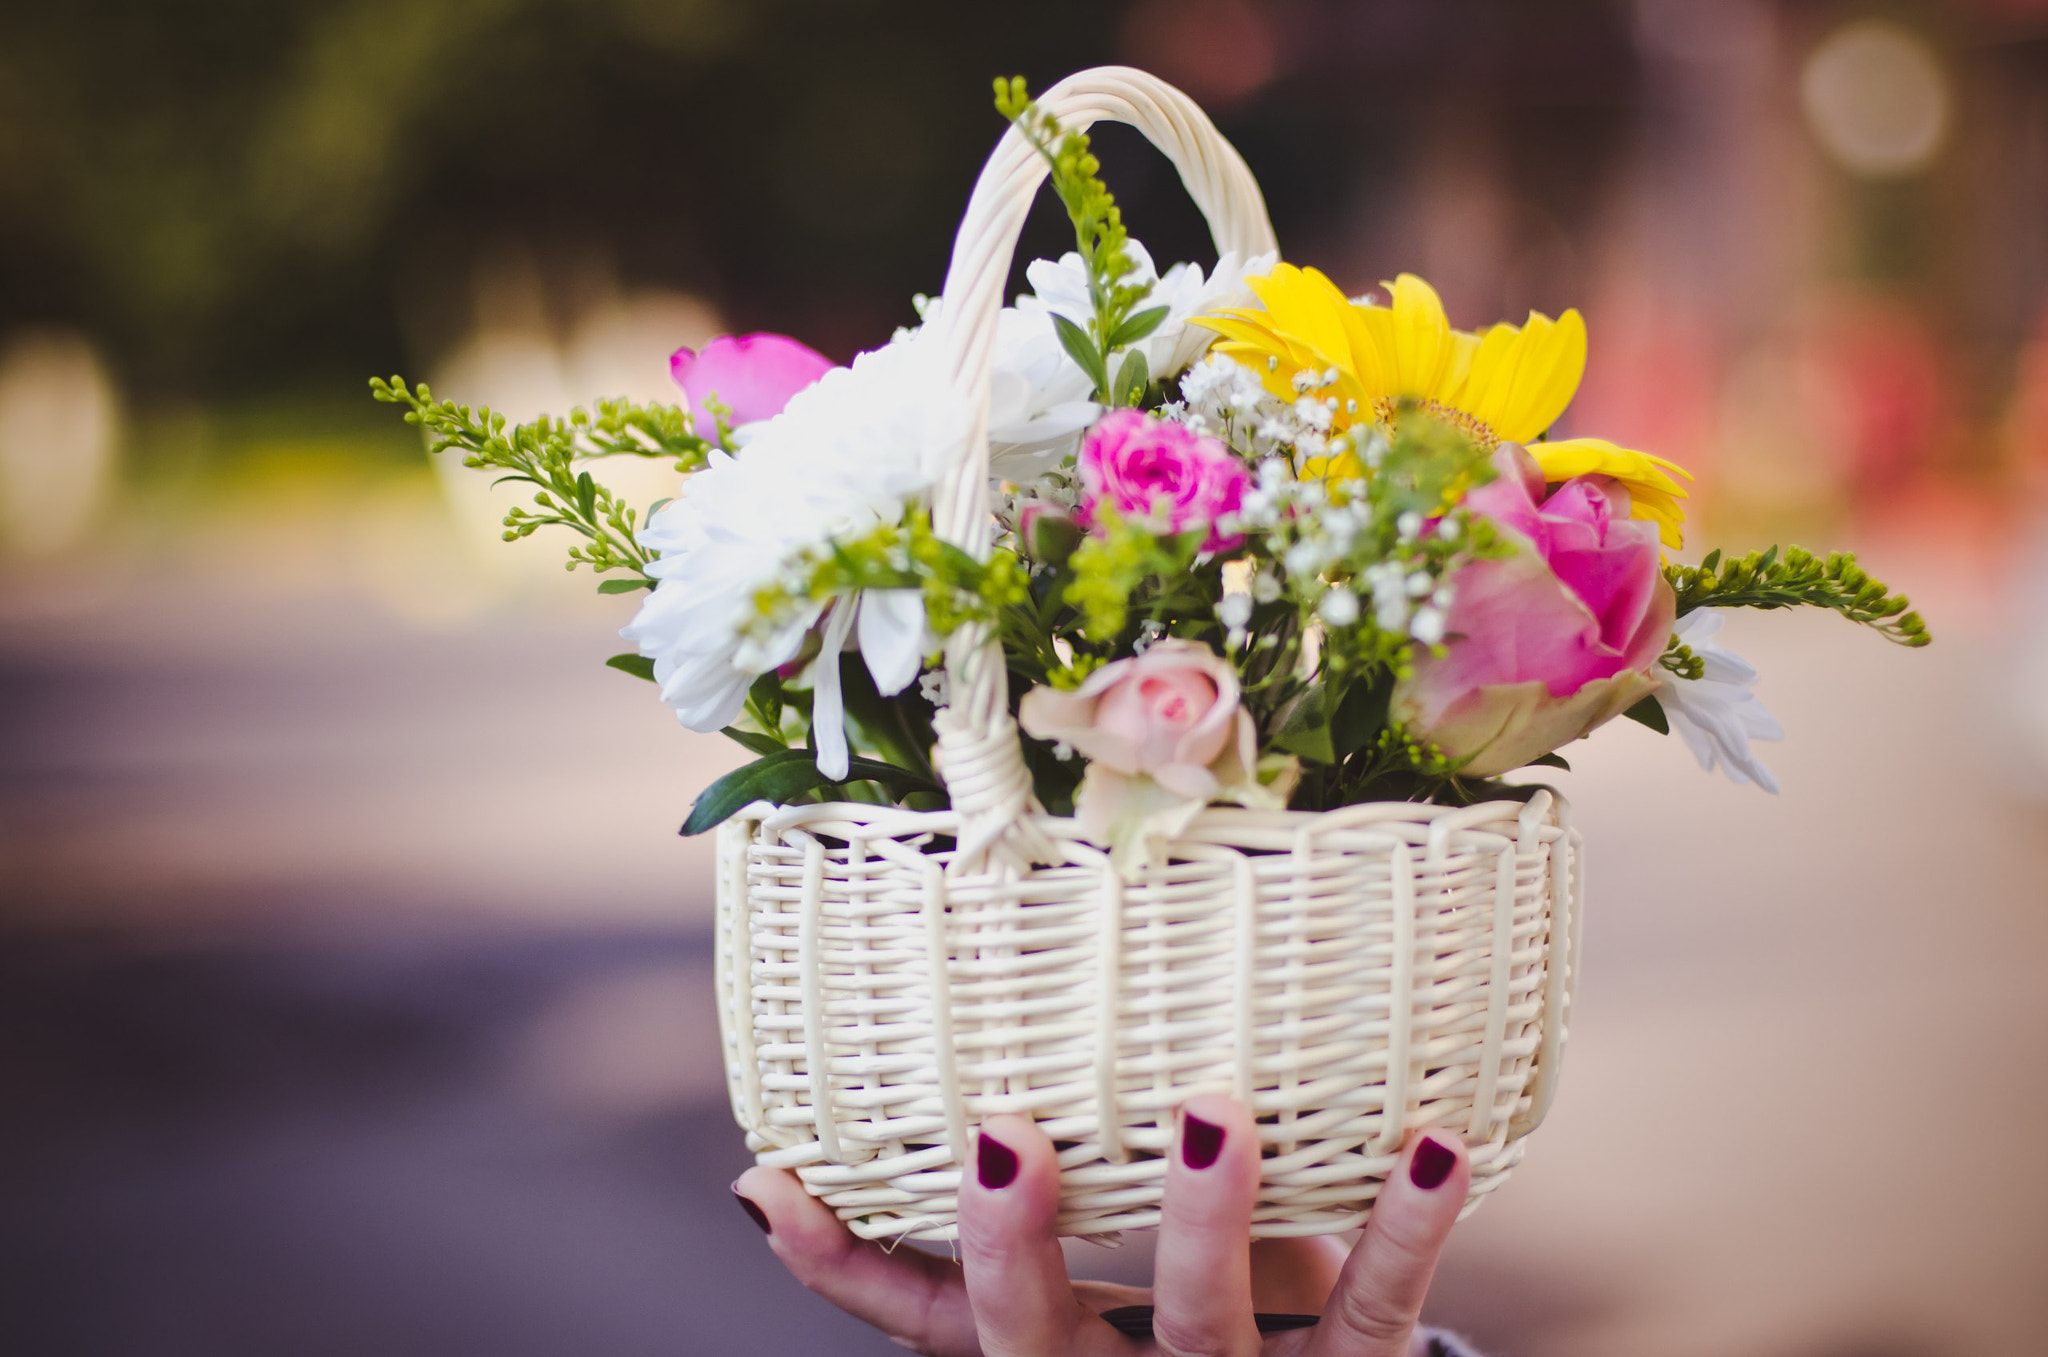 Photograph wedding small basket by Arseniy Anufriev on 500px